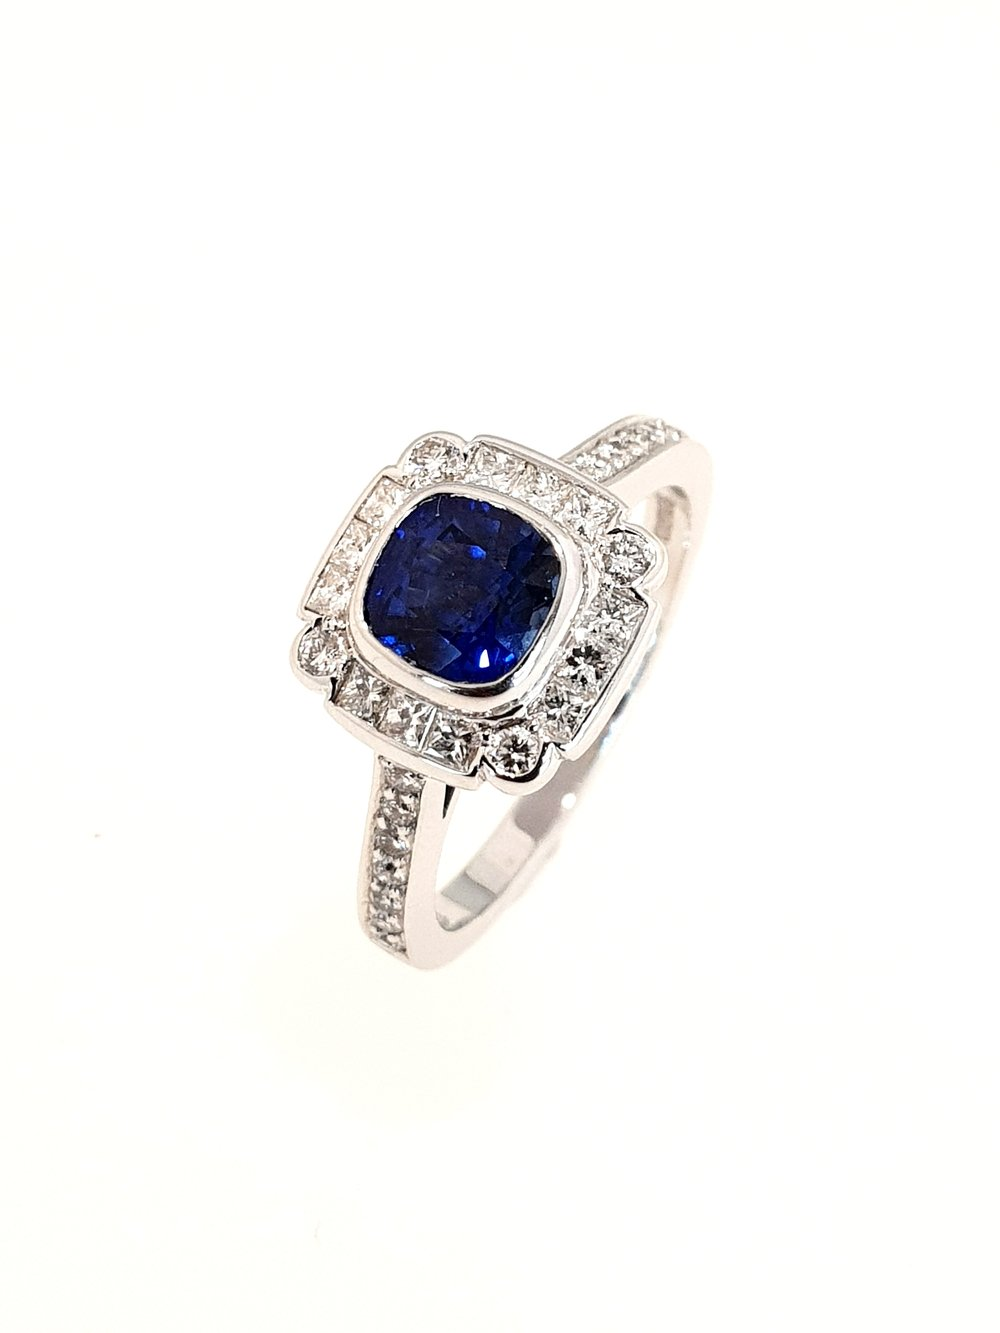 18ct White Gold Sapphire(.24ct) & Diamond Ring  Diamond: .29ct, G, Si1  Stock Code: N8944  £5500